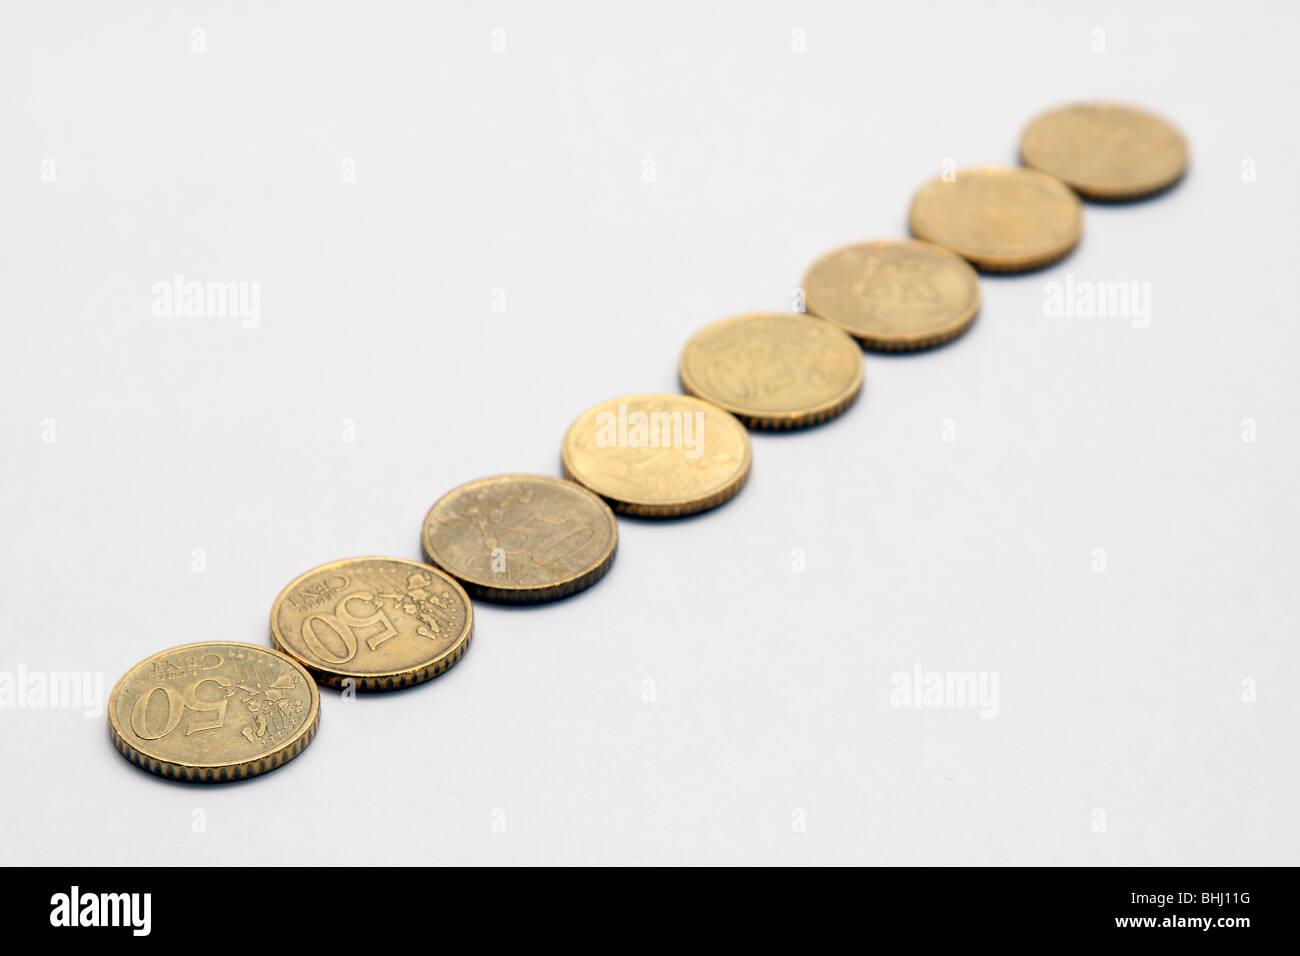 Euro coins on white background - Stock Image